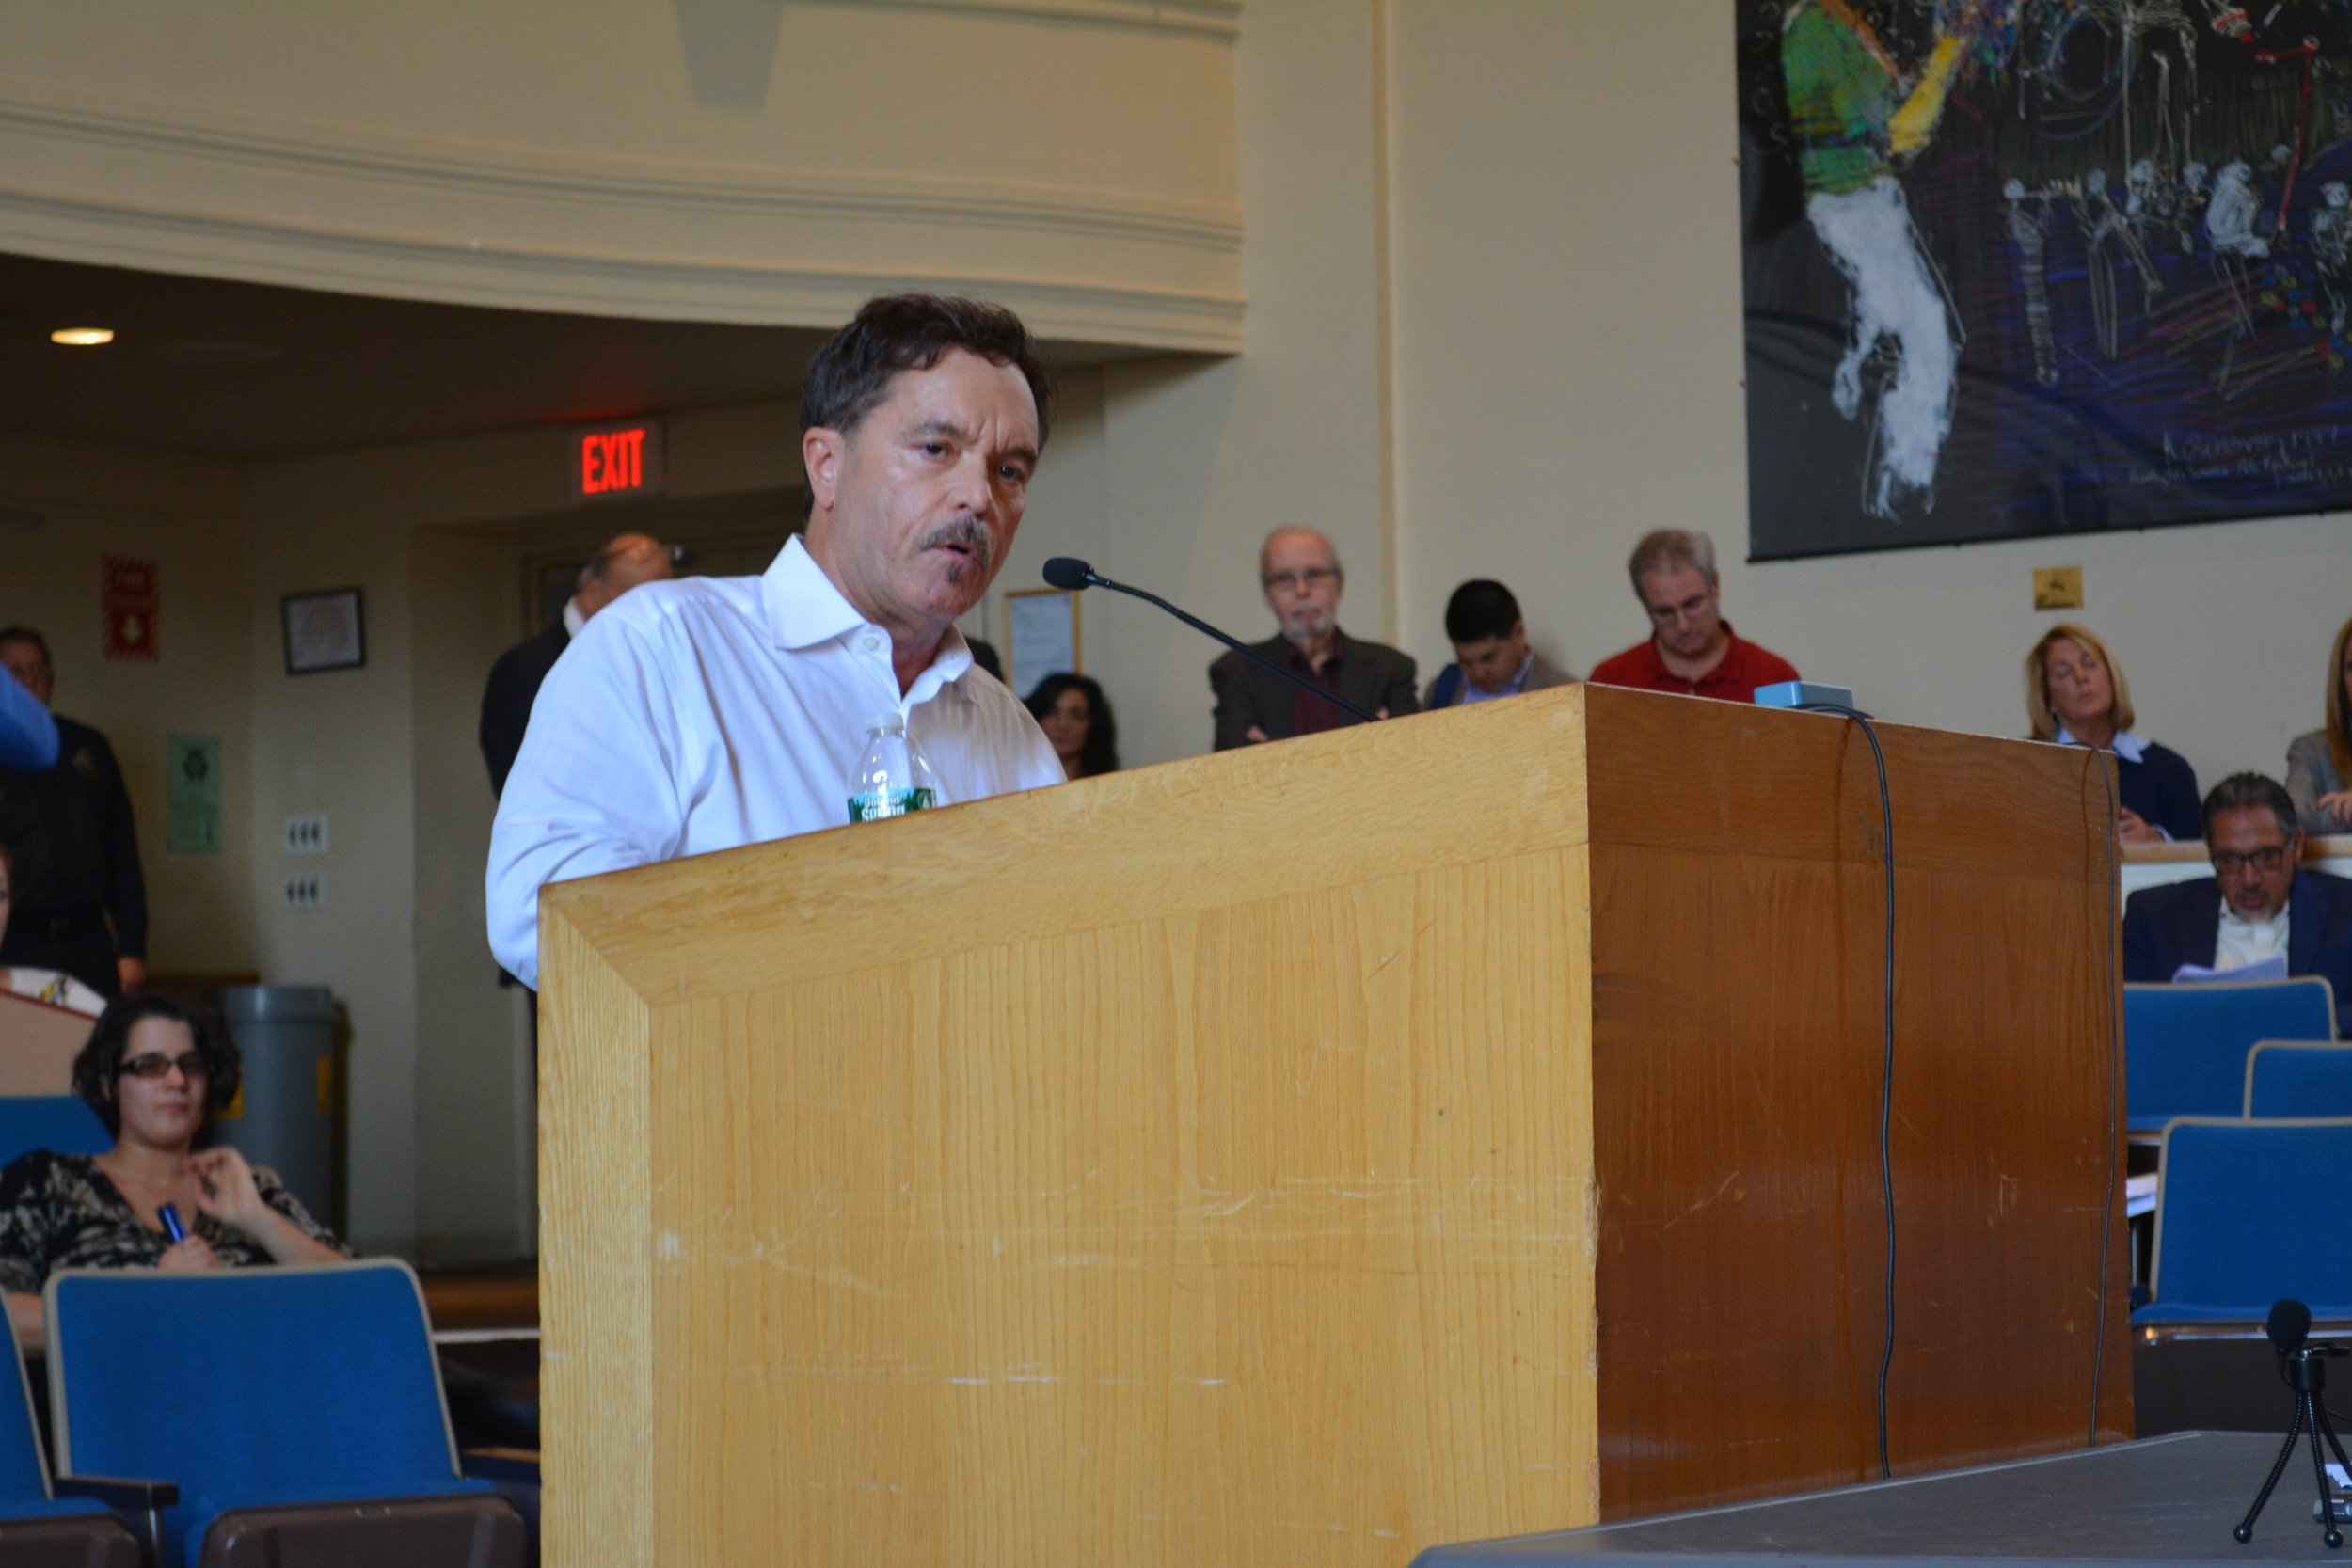 Robert Holmes, of Asharoken, speaks during the Nov. 6 Huntington town board meeting against a proposal calling for an oversized dock planned to extend off of a 22-acre Duck Island property in Asharoken. The proposal was approved by the   board 4-0.